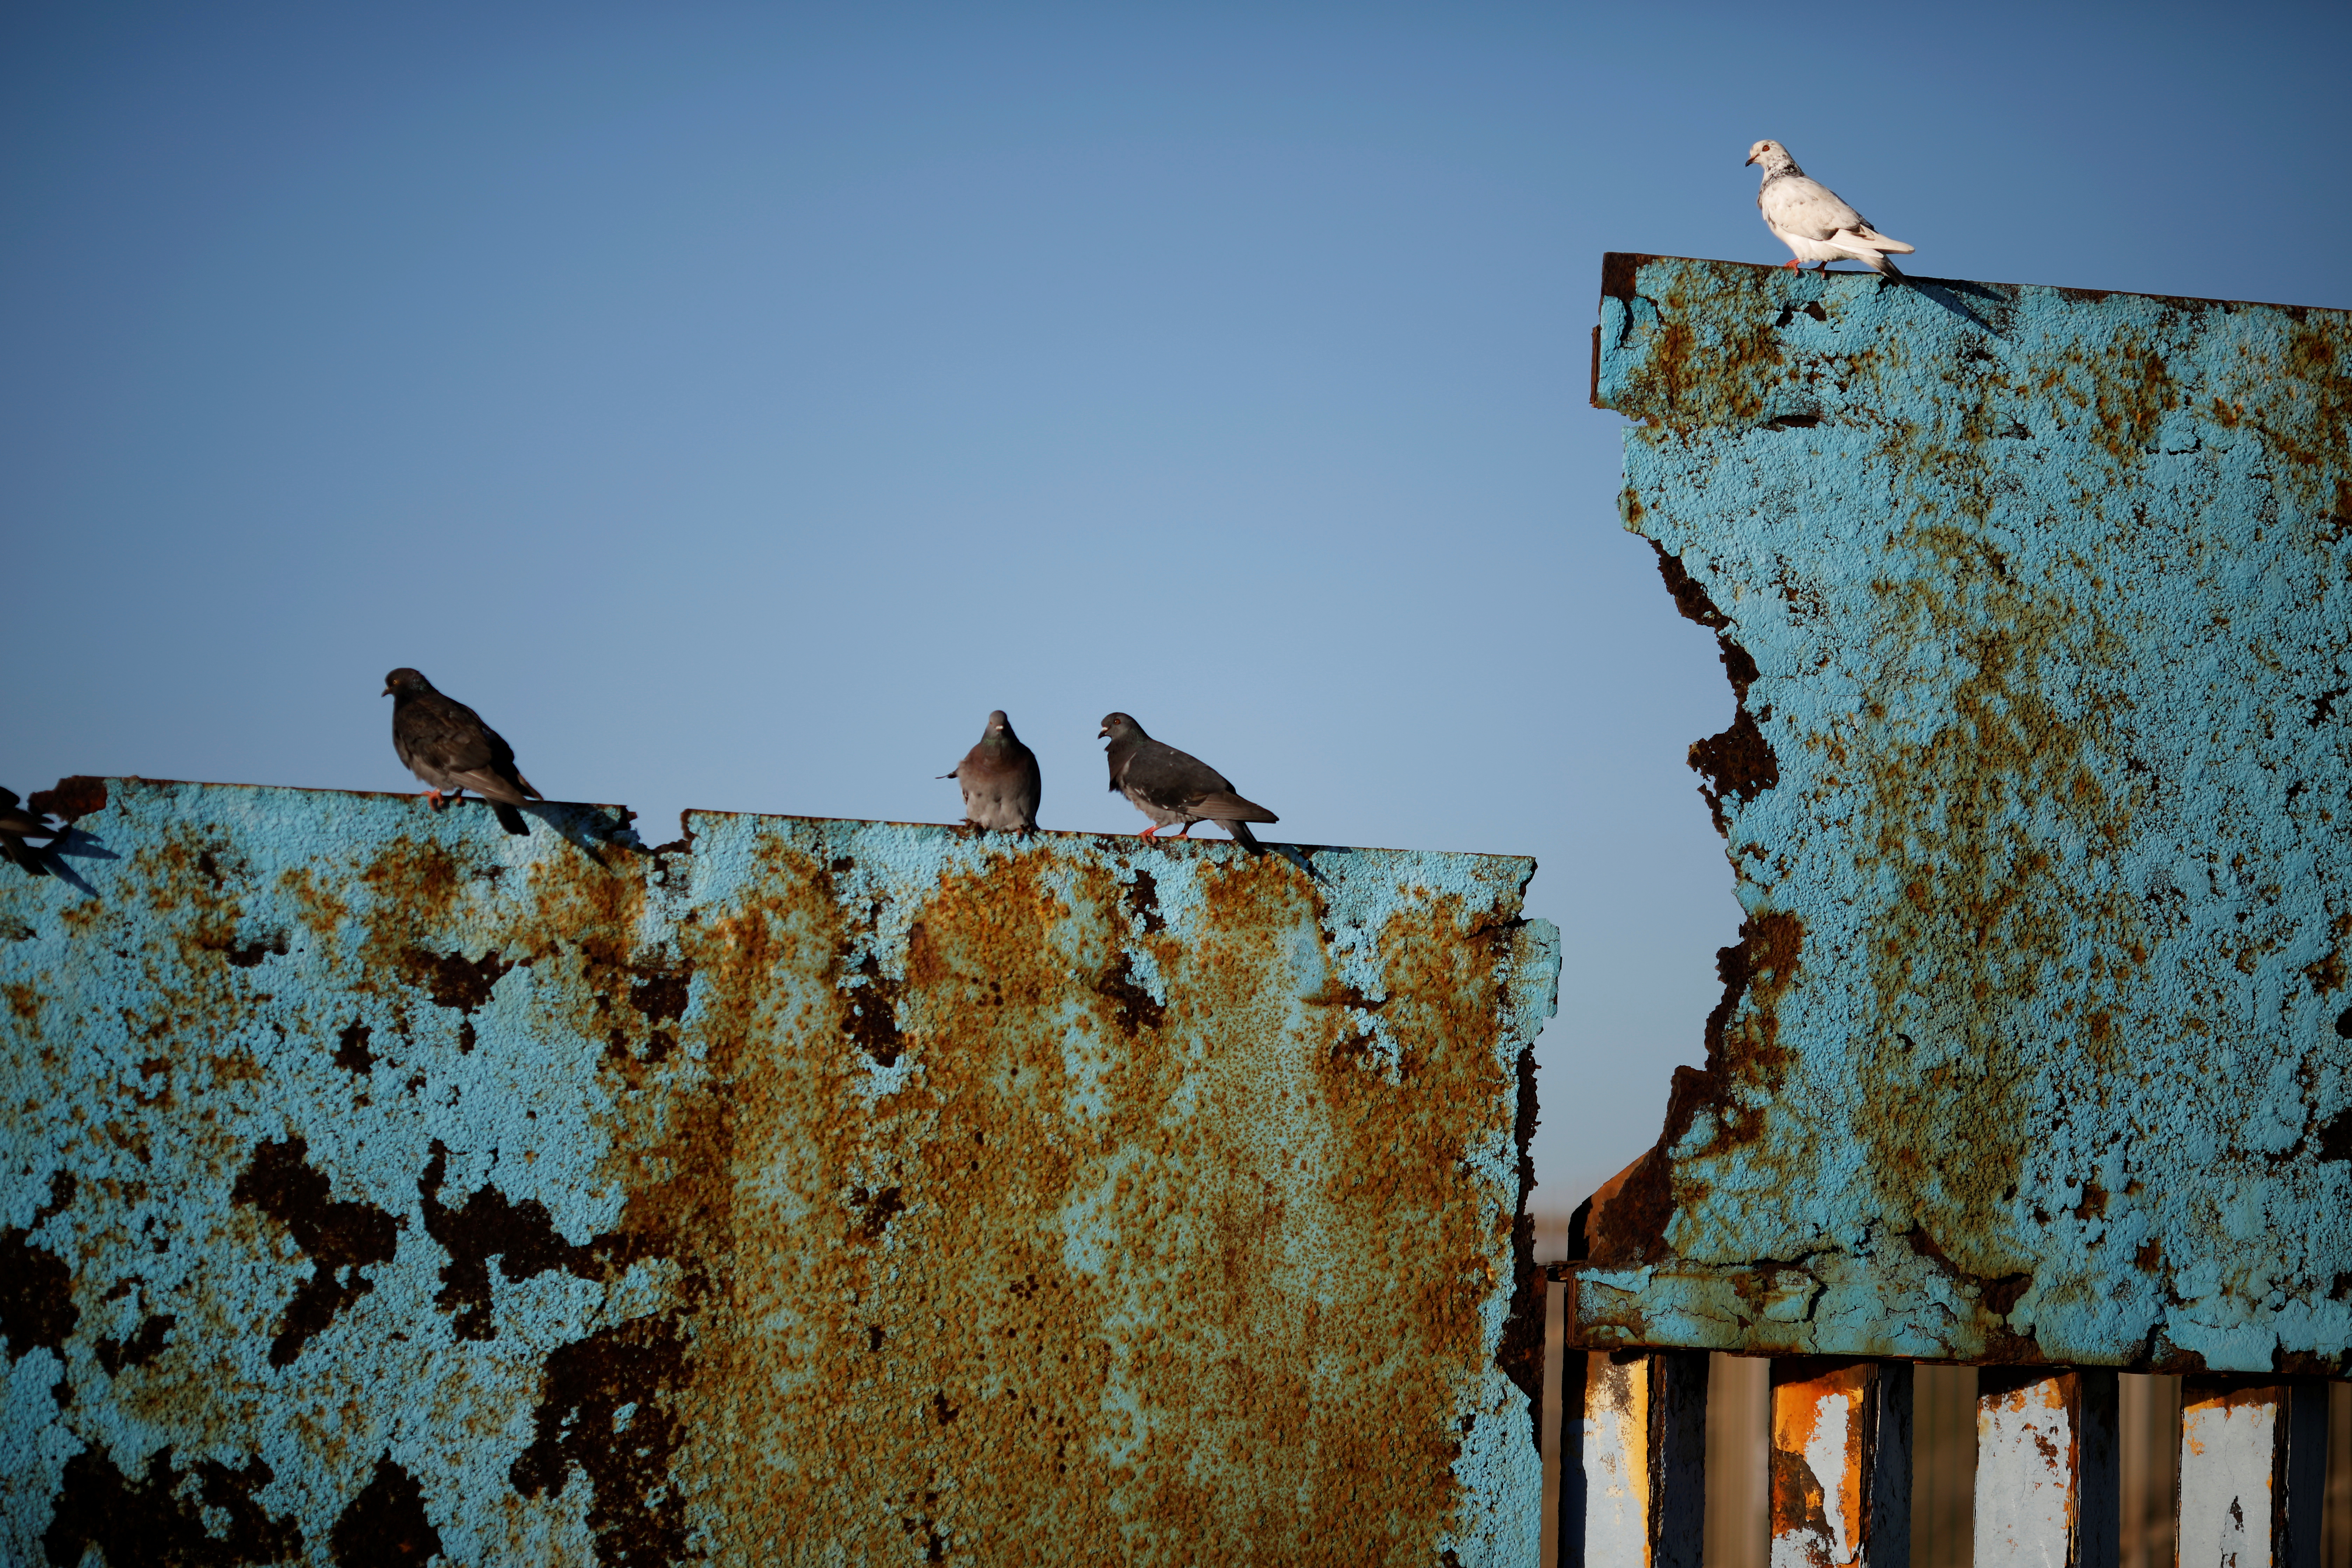 Birds are seen on a section of the border fence between United States and Mexico in Tijuana, Mexico December 15, 2018.